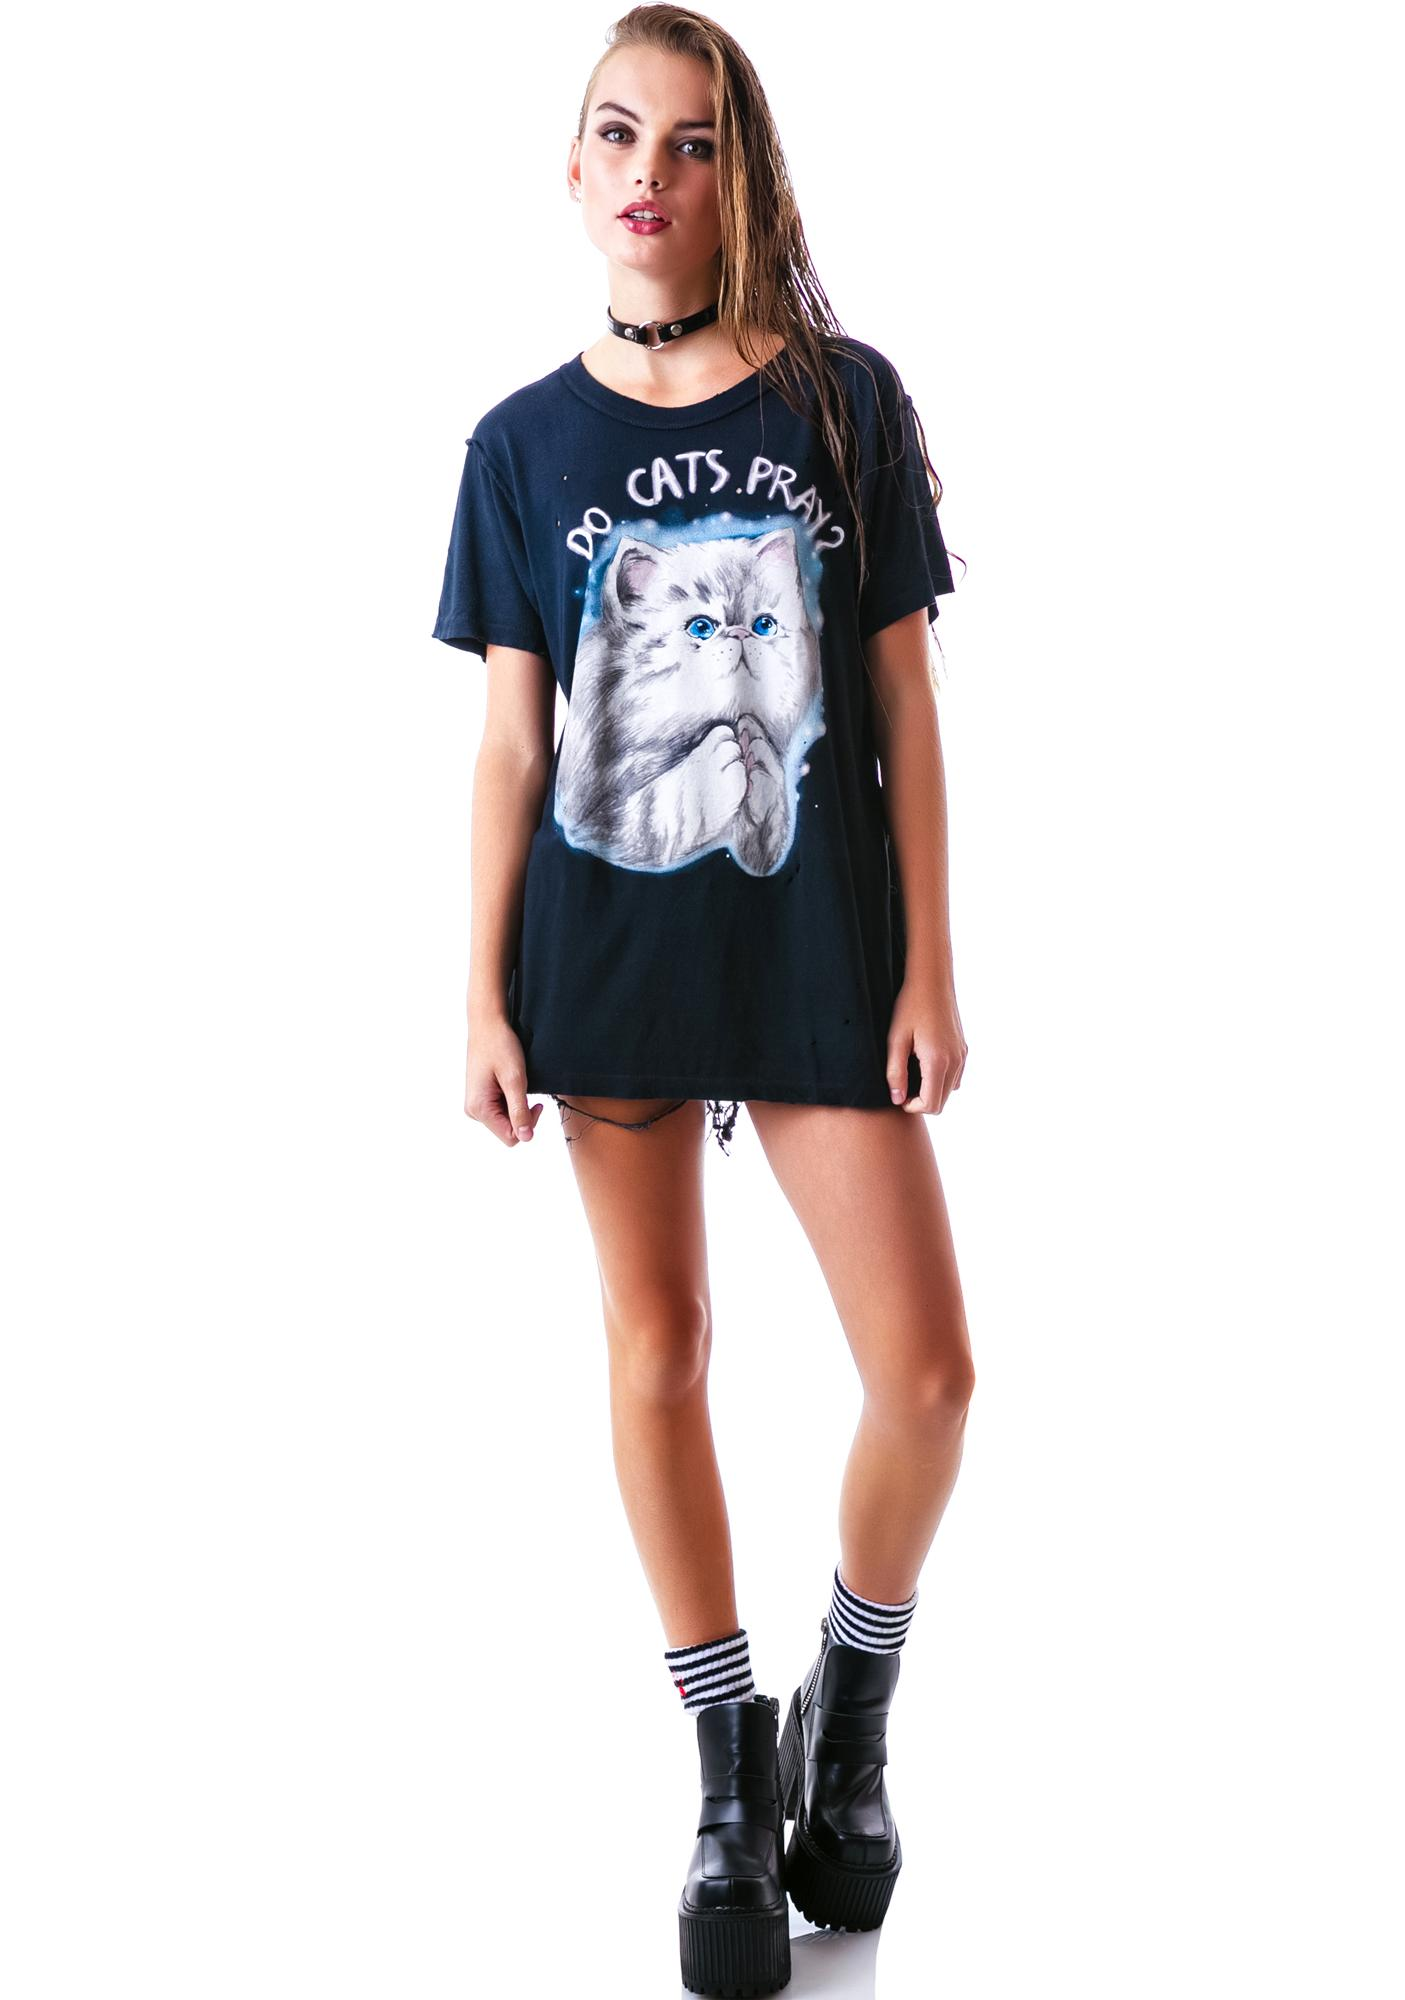 UNIF Do Cats Prey? Short Sleeves Tee